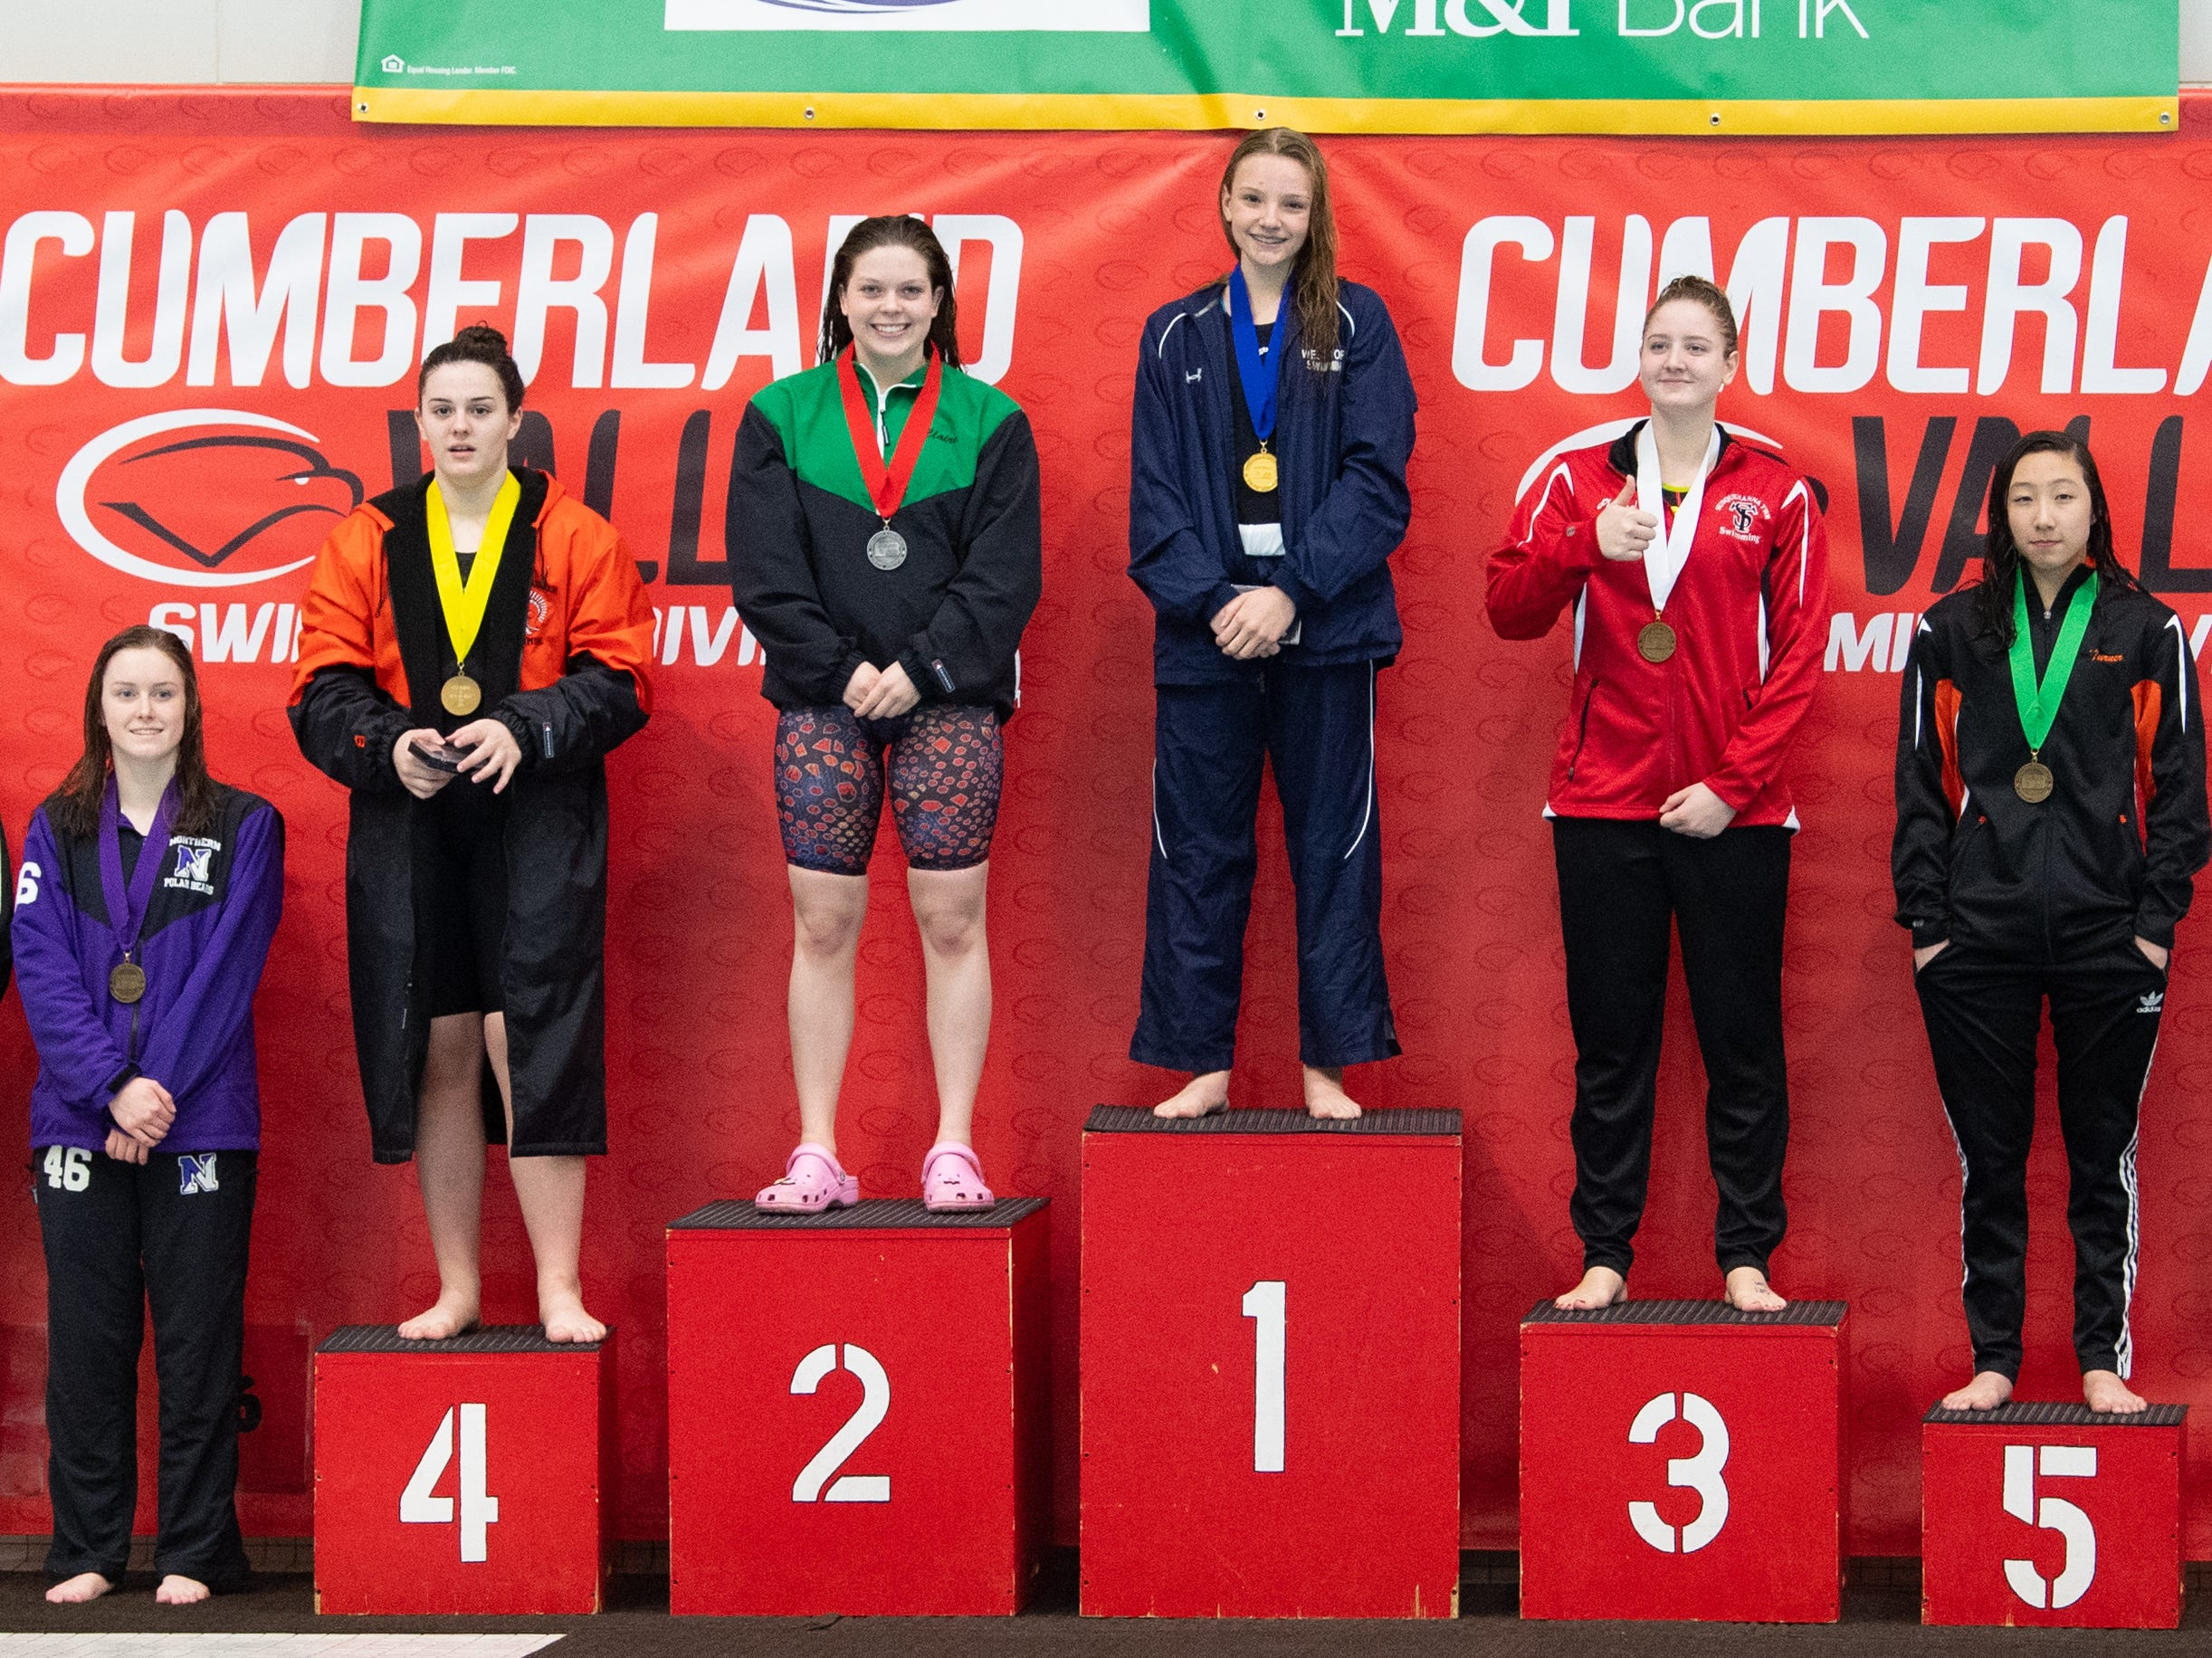 Medalists of the Girls 200 IM stand on the podium during the PIAA District 3 Girls AA Championship, March 1, 2019 at Cumberland Valley High School.